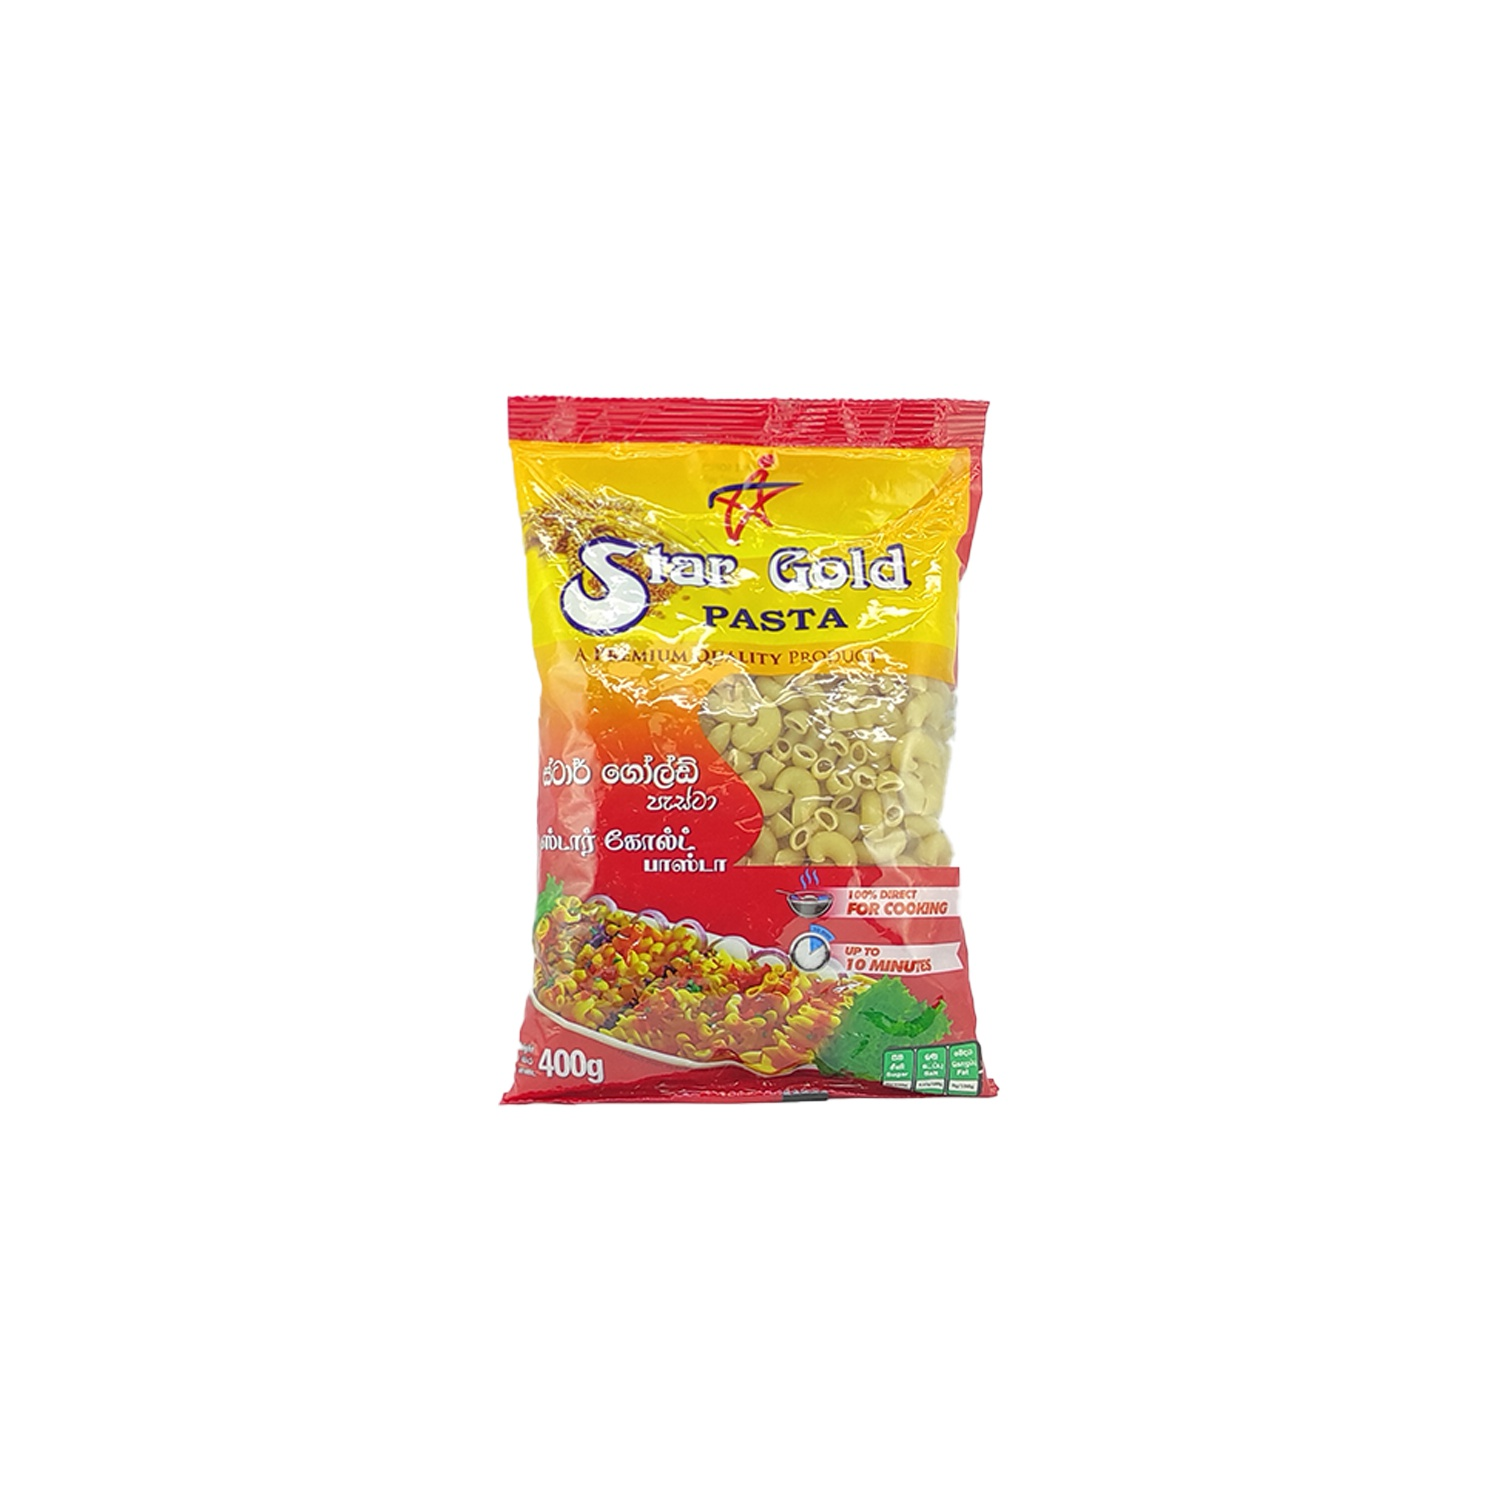 Star Gold Pasta Elbow 400G - in Sri Lanka